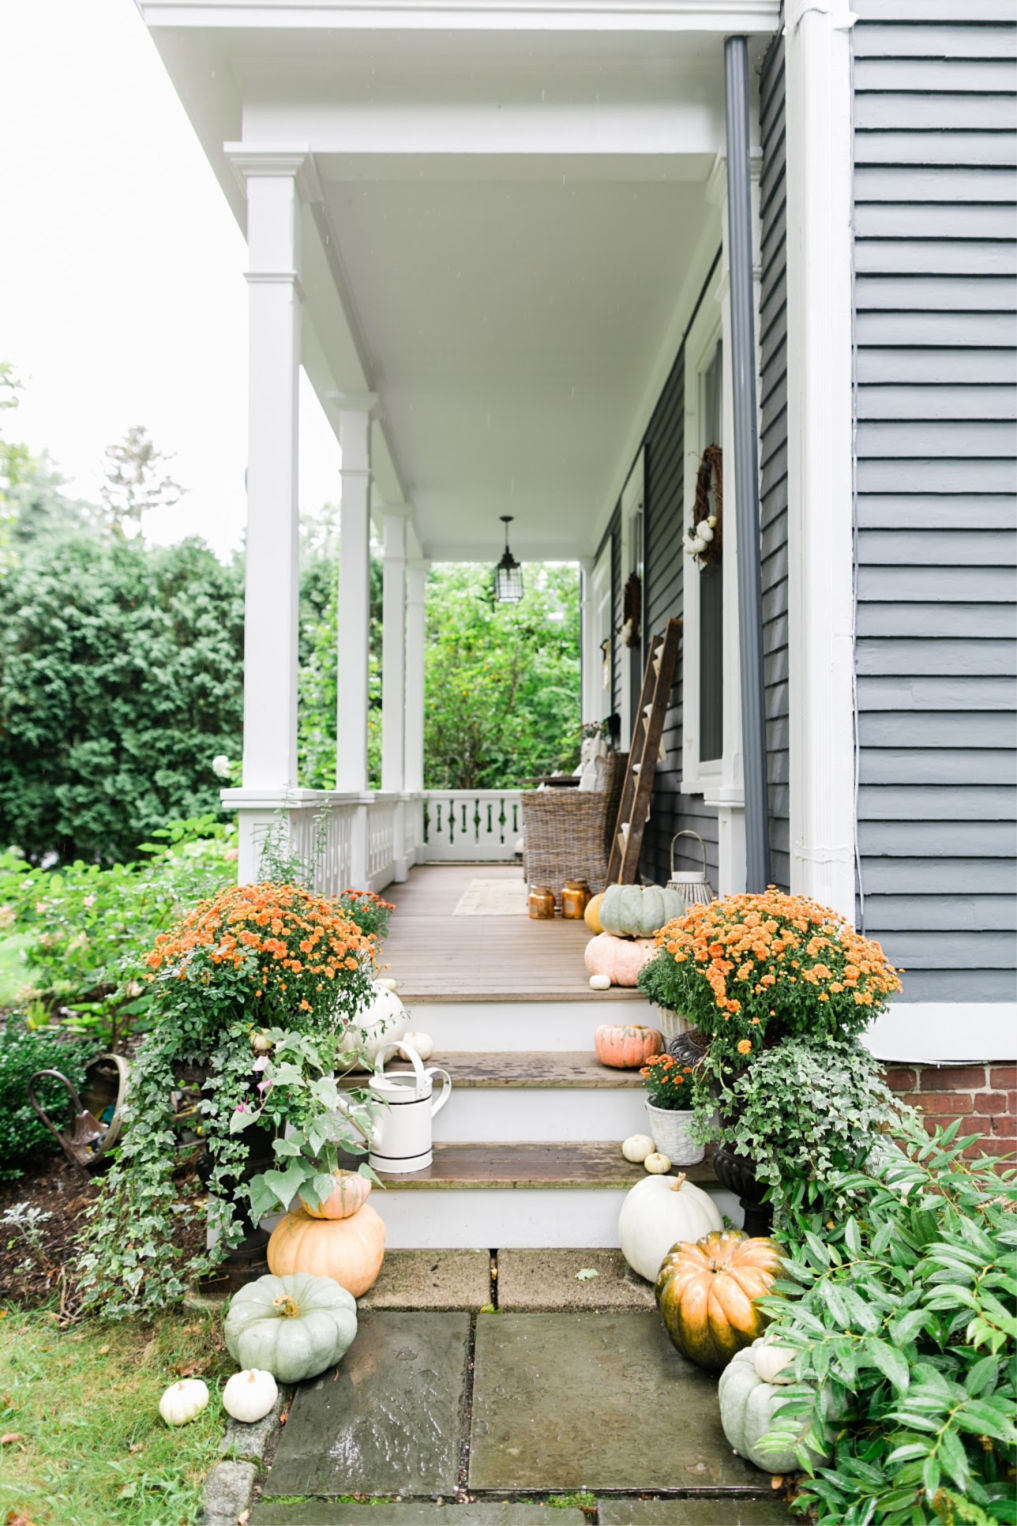 Love this charming old home with inviting porch and the detail of the porch railing kellyelko.com #fall #fallporch #falldecor #fallflowers #falldecorating